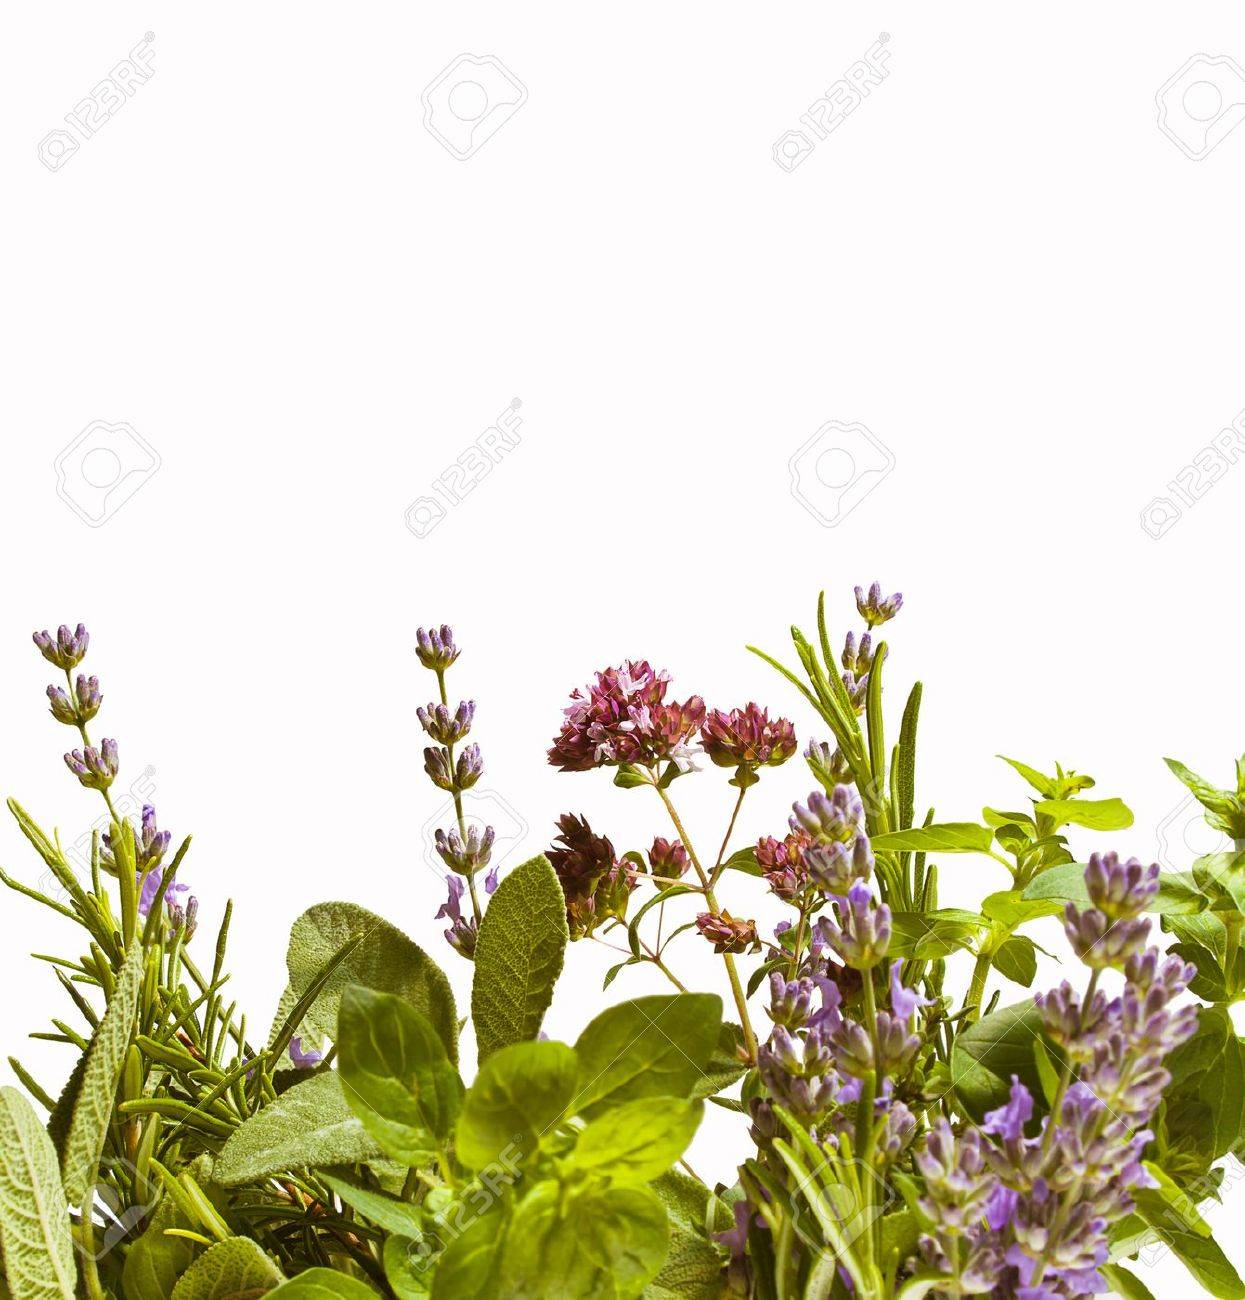 Summer herbs isolated against white background lavender, rosemary, sage and oregano in bloom - 14044278